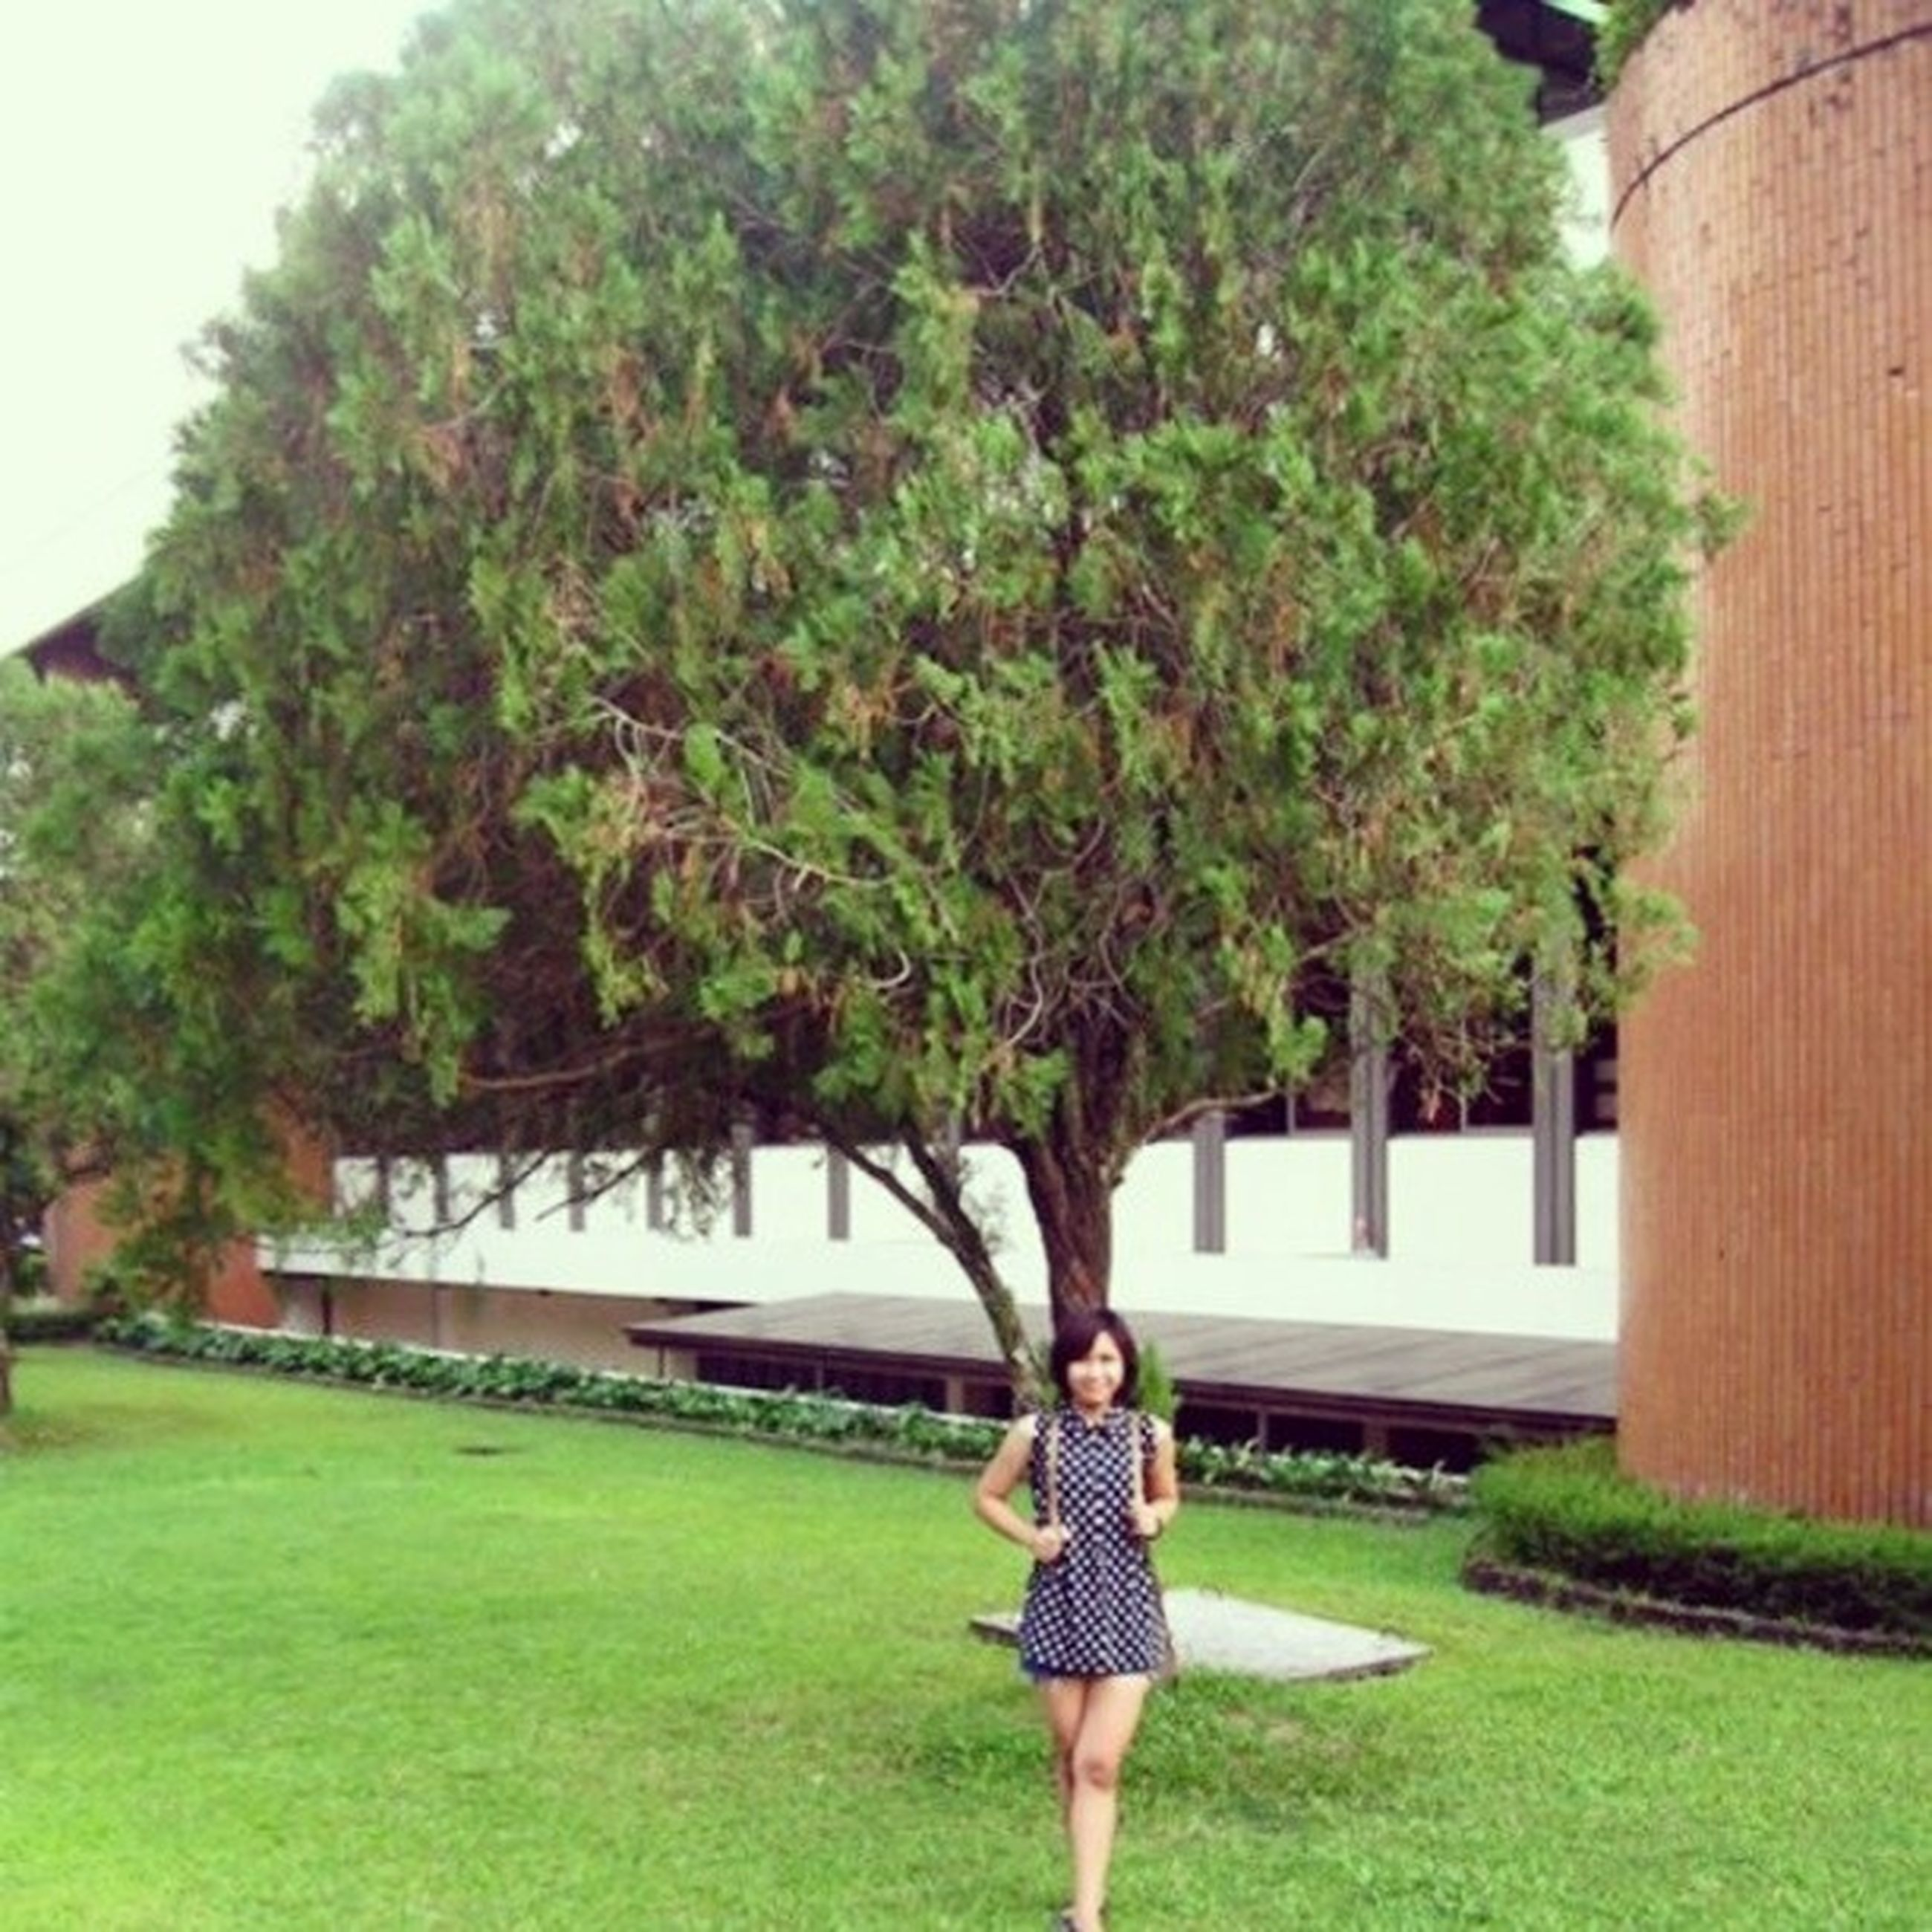 tree, lifestyles, casual clothing, full length, grass, leisure activity, young adult, person, standing, young women, green color, park - man made space, three quarter length, rear view, building exterior, front view, growth, architecture